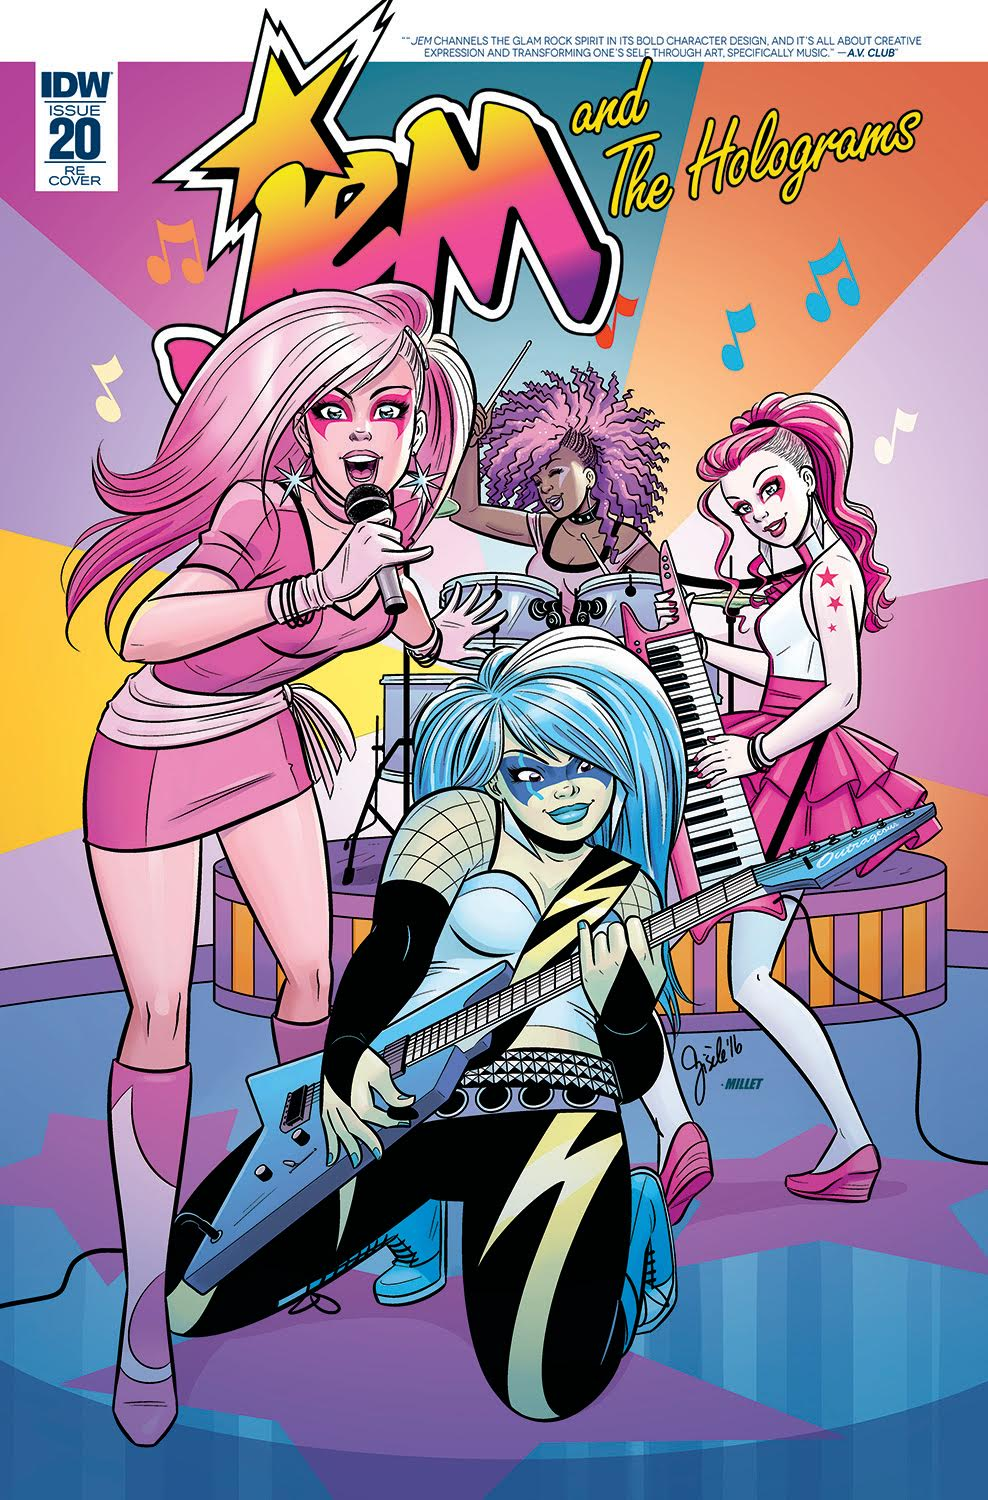 JEM AND THE HOLOGRAMS #20 variant cover by Gisele Lagace